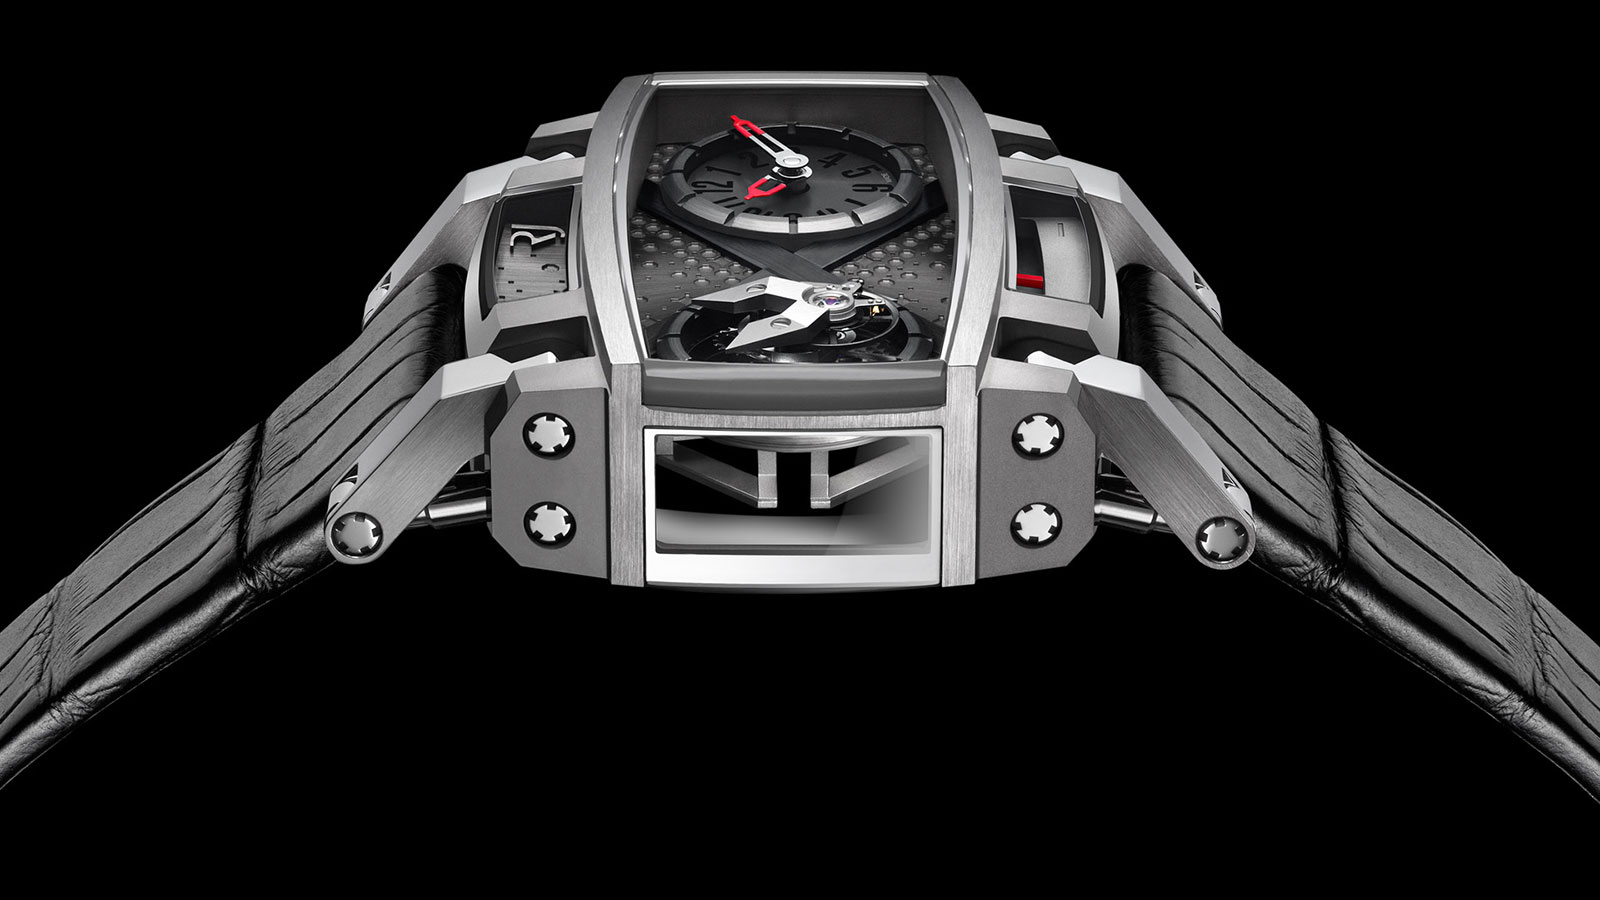 RJ Moon Orbiter Men's Watch | futuristic watches for men